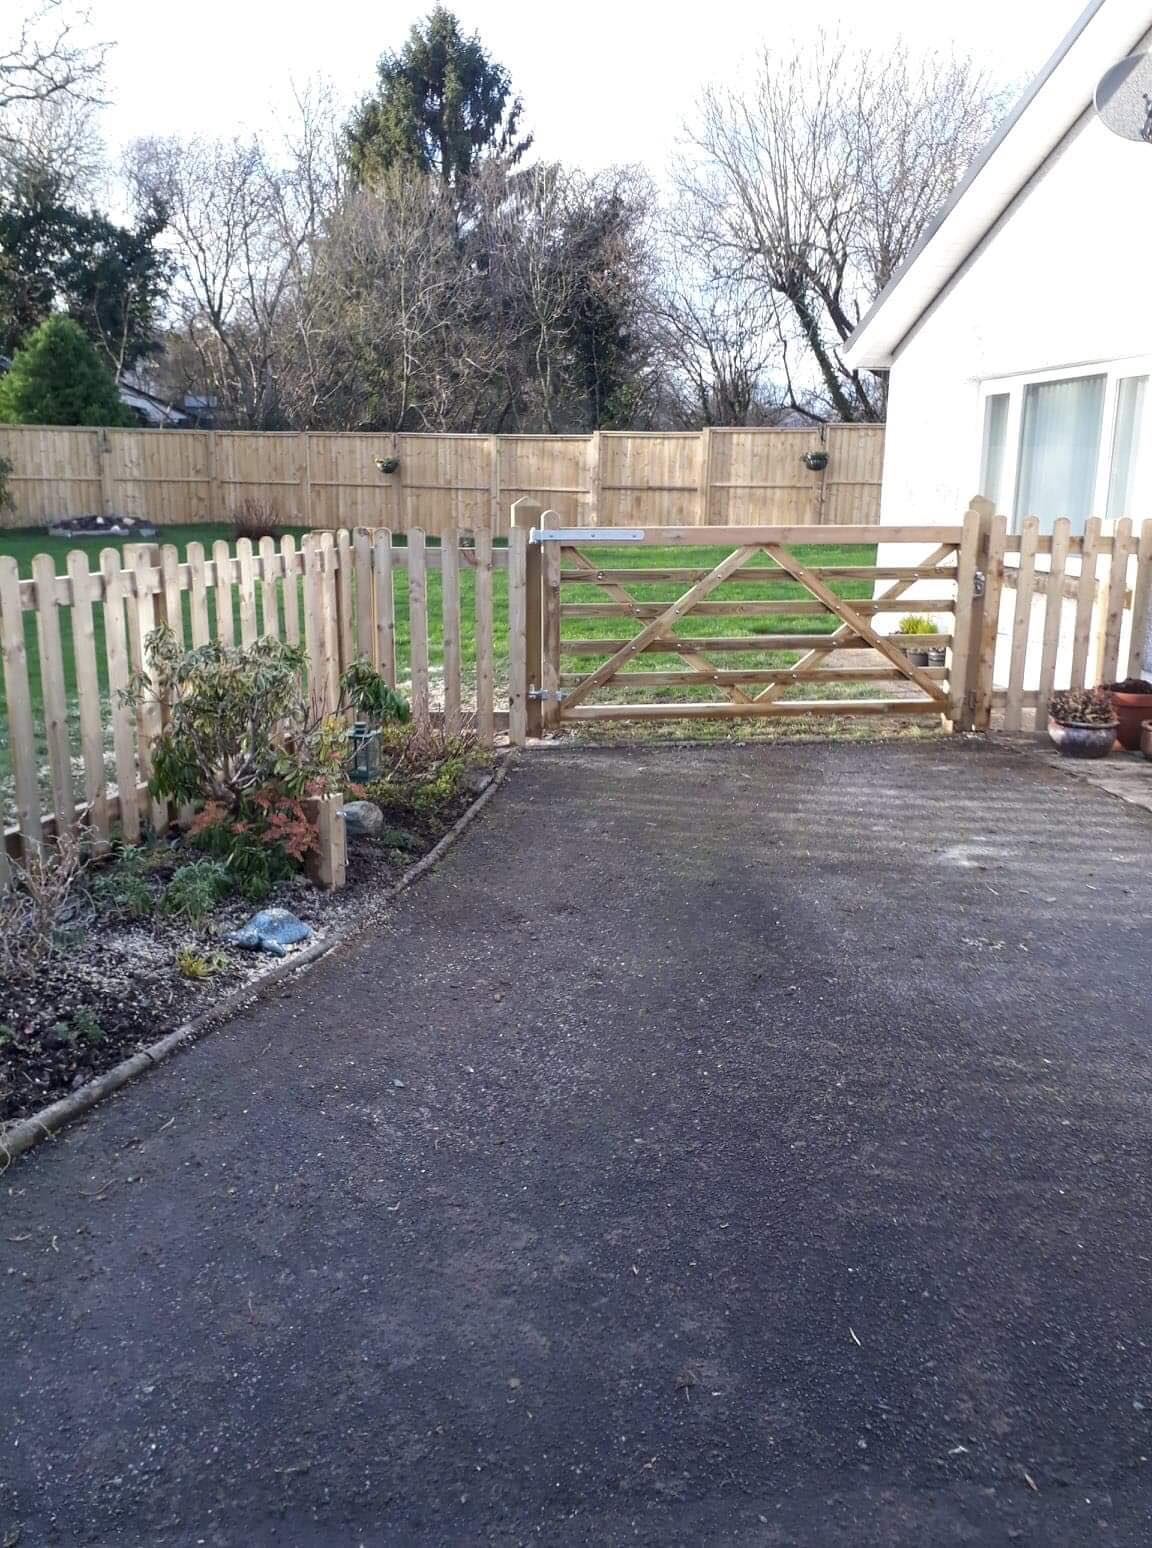 Wooden 6 bar gate and picket fence - between driveway and garden